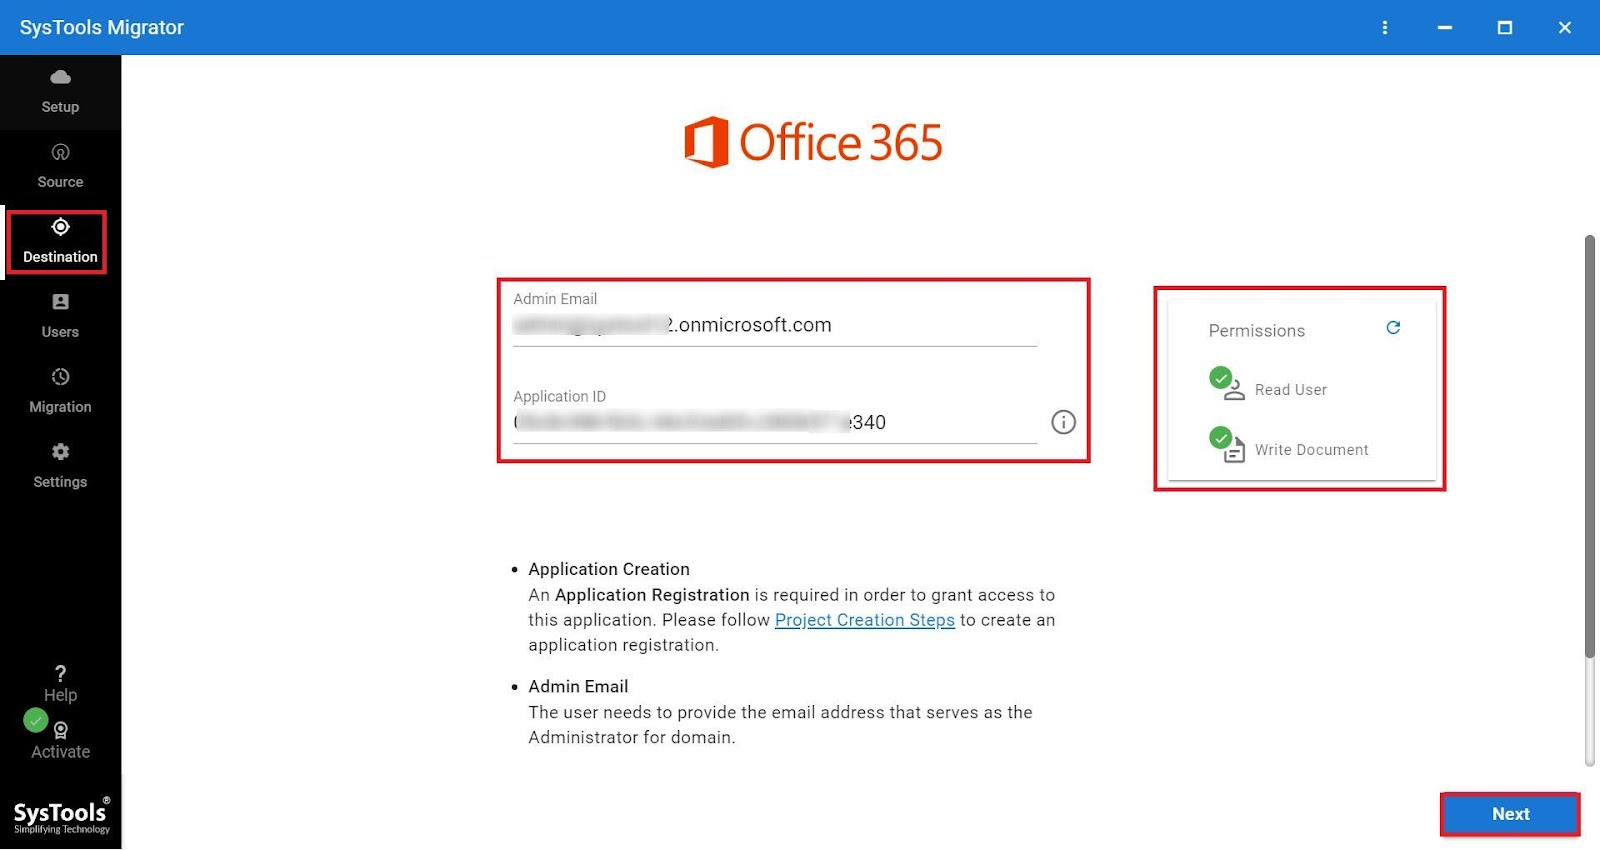 Office 365 as destination